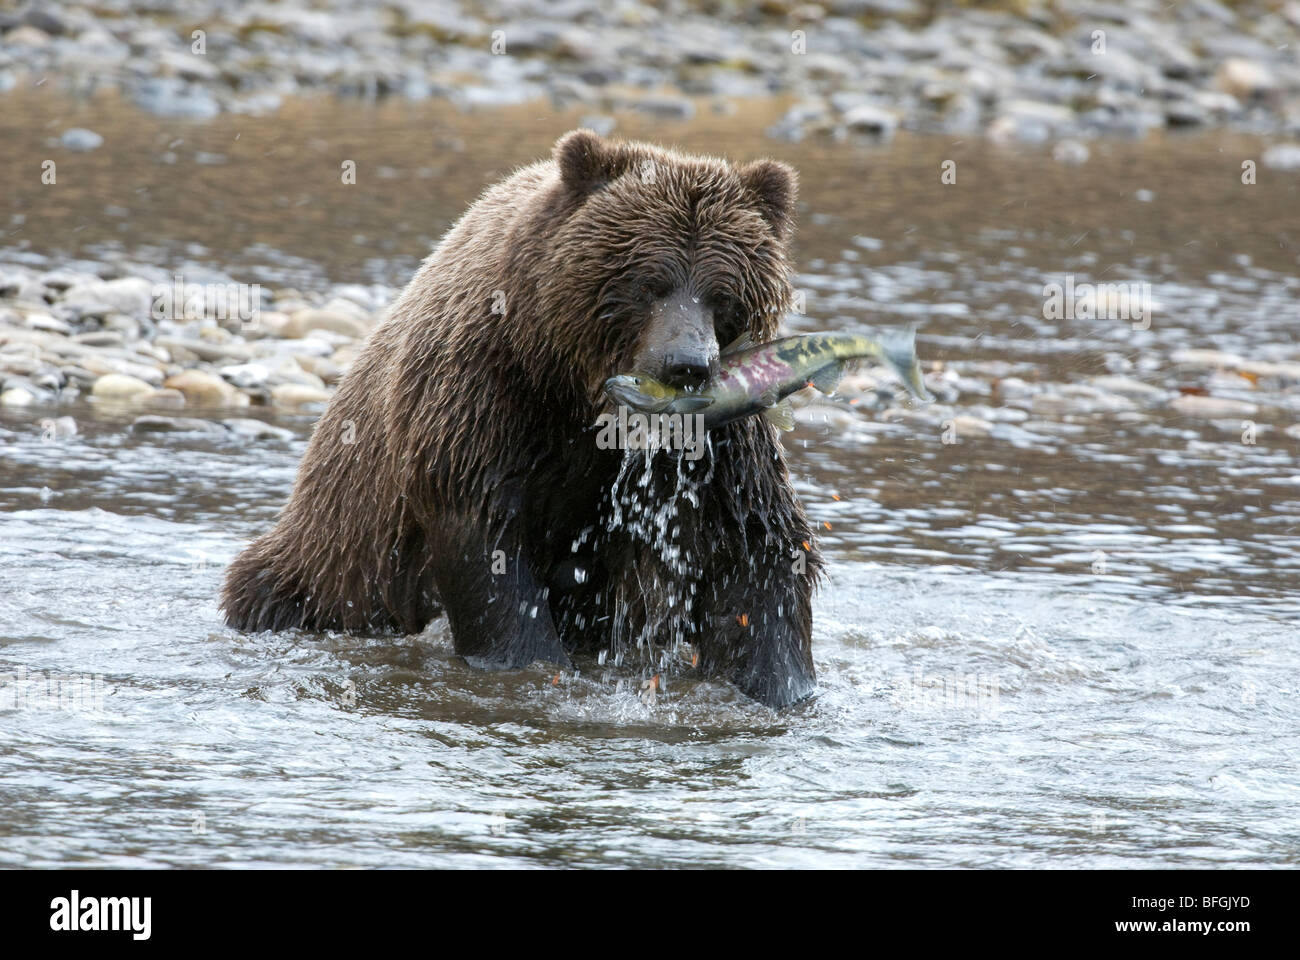 Wild Grizzly bear catching chum or dog salmon from Fishing Branch River in early winter. Fishing Branch Ni'iinlii'njik - Stock Image